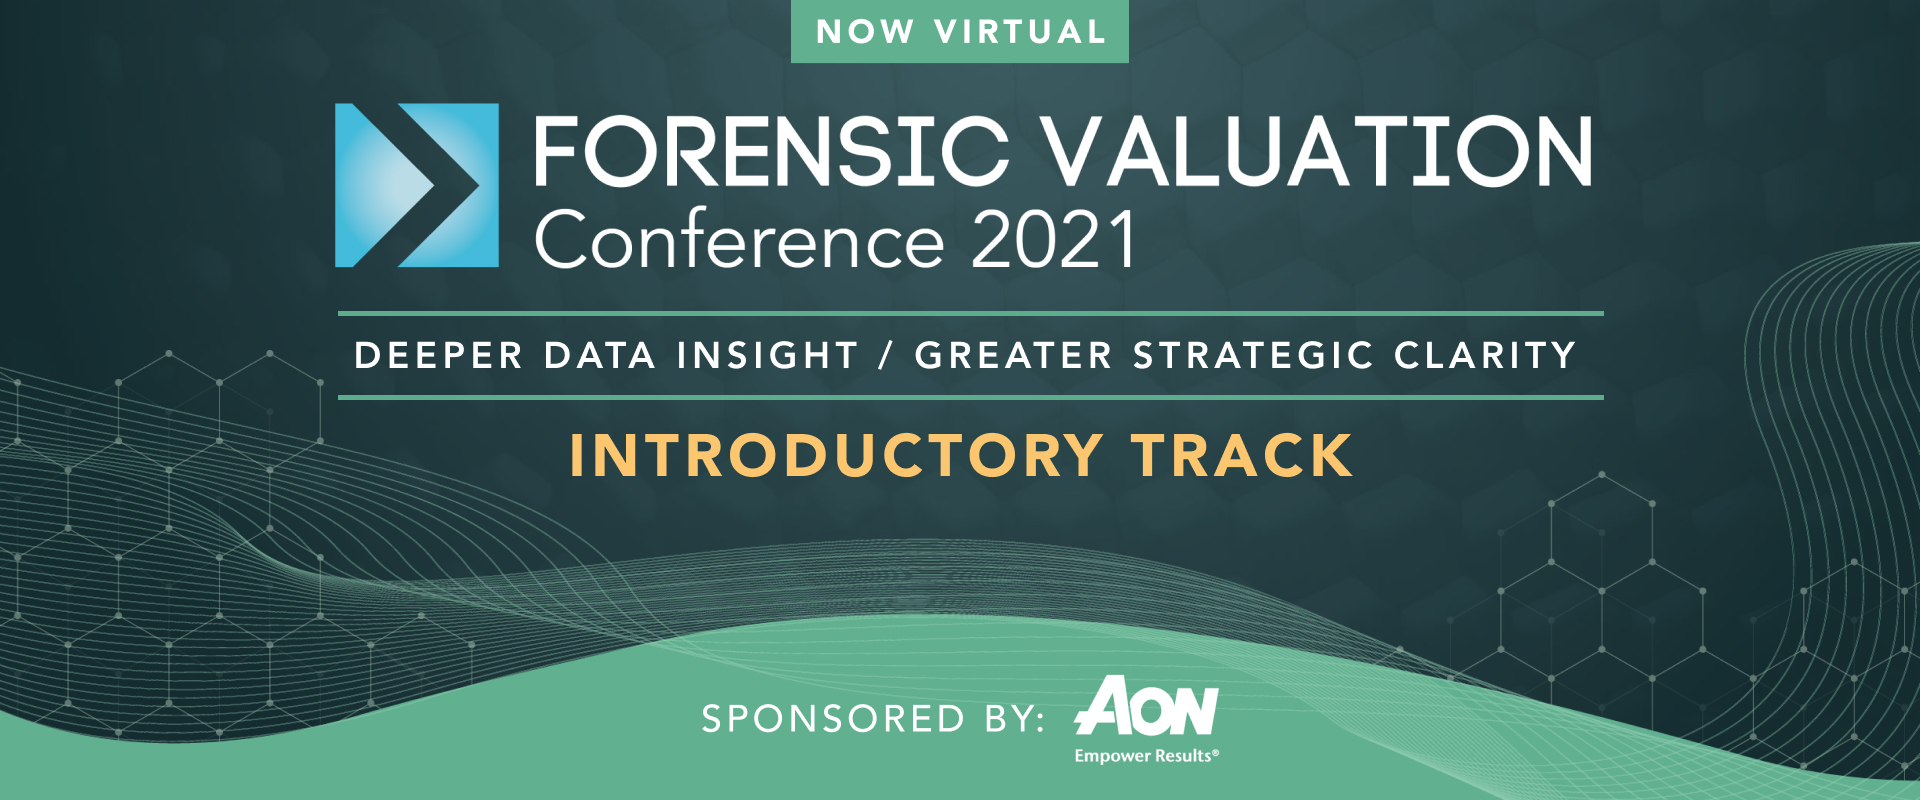 2021 FORENSIC VALUATION CONFERENCE (INTRODUCTORY TRACK)